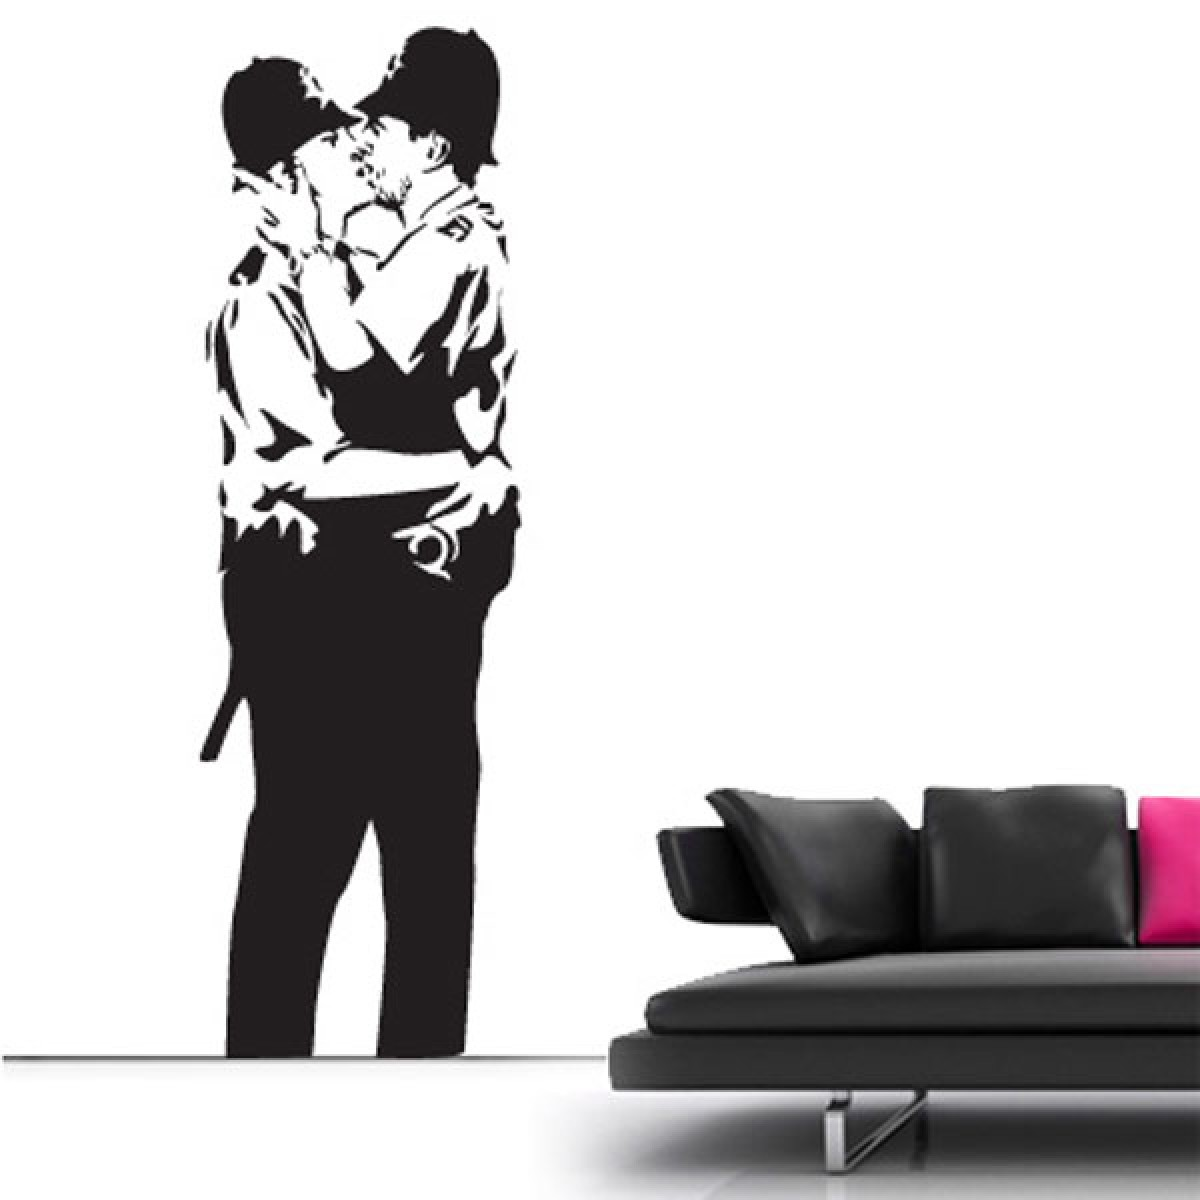 banksy wall stickers banksy wall decor banksy kissing cops wall sticker